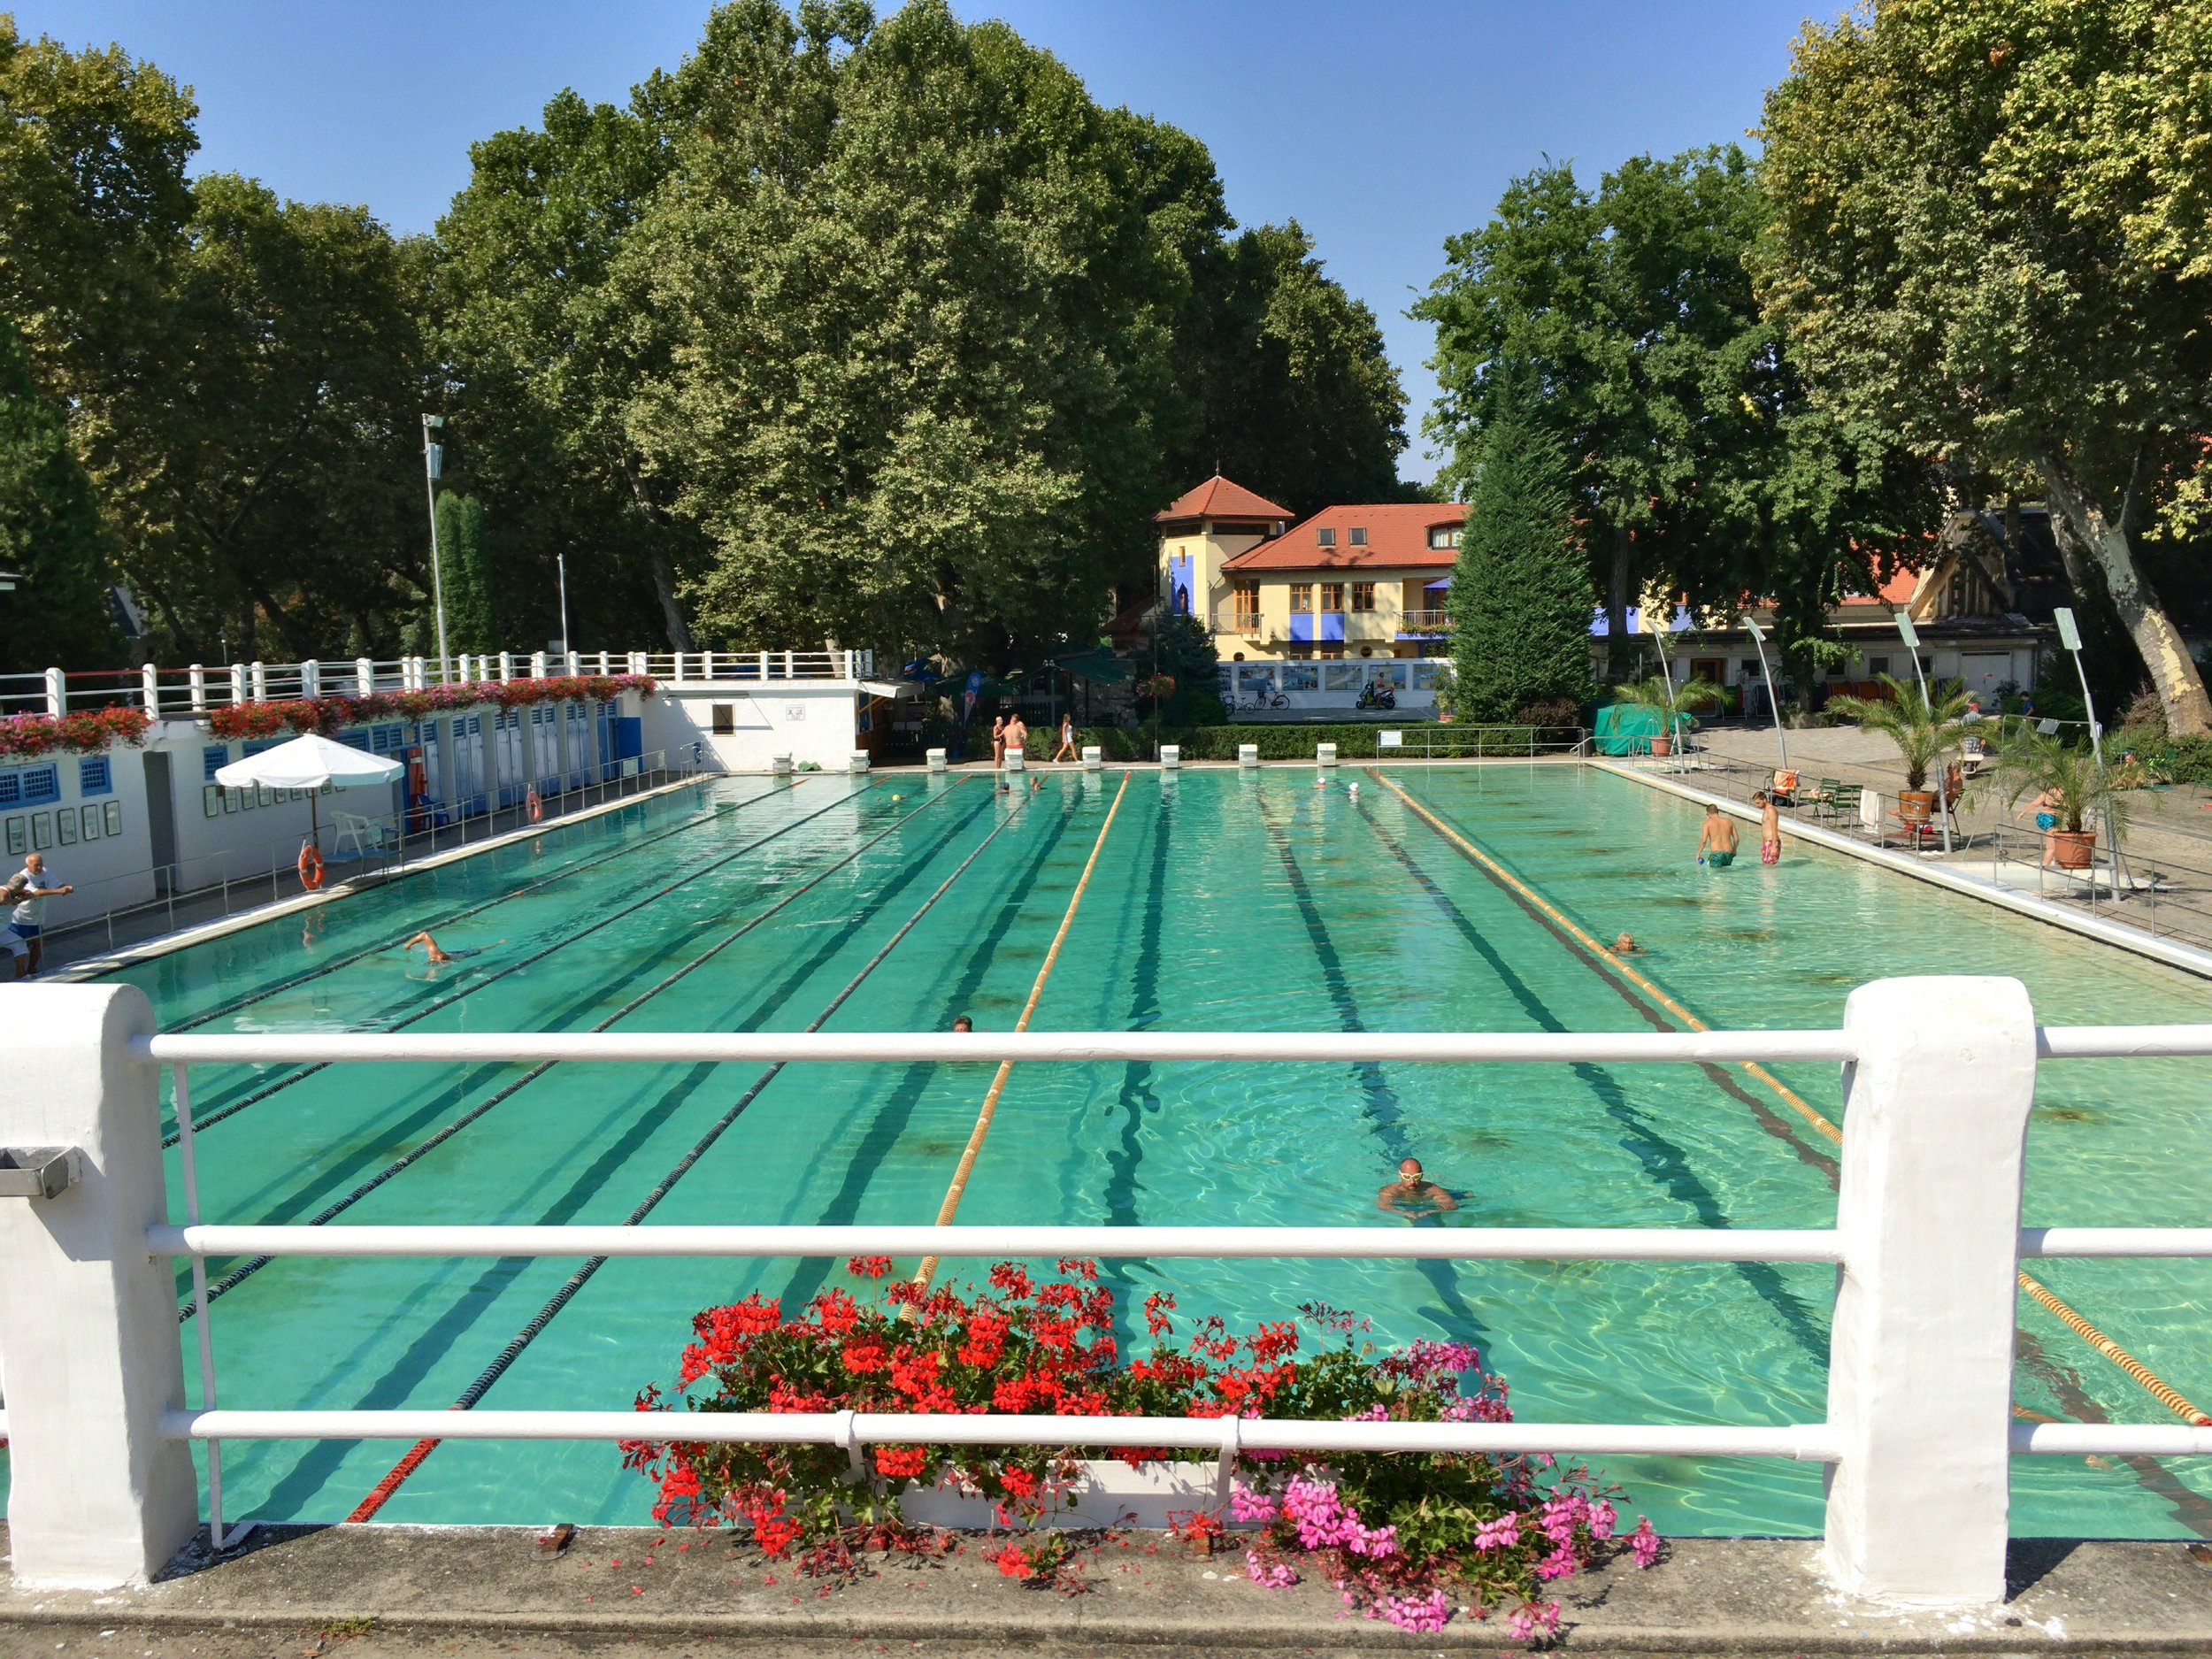 Another fabulous place to be entertained is at a public pool. This however, is no oridnary complex, it's a beautifully maintained historic pool in Esztergom, Hungary, where can you still get to witness classic high-cut white Speedos on old men.